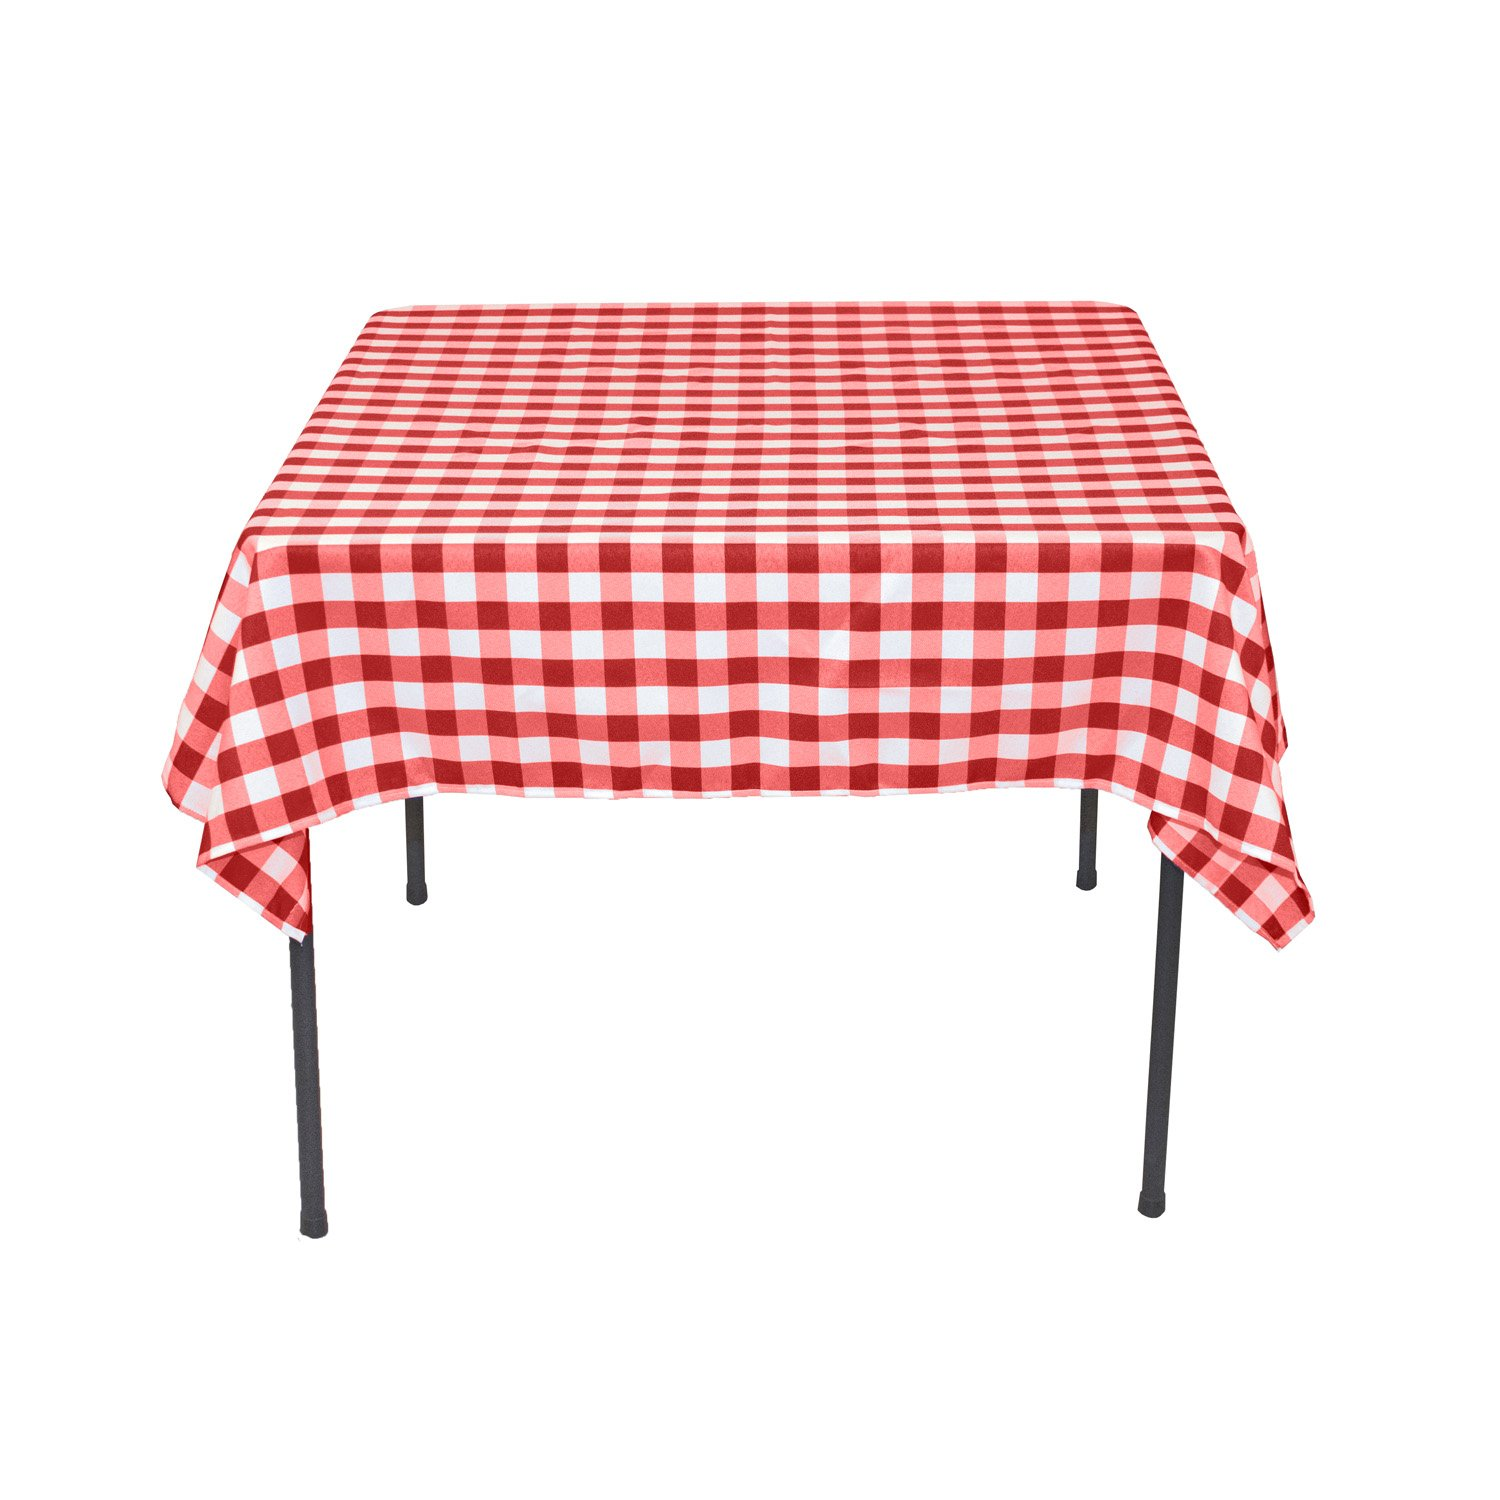 Square Tablecloth Linentablecloth 54 Inch Square Polyester Tablecloth Red